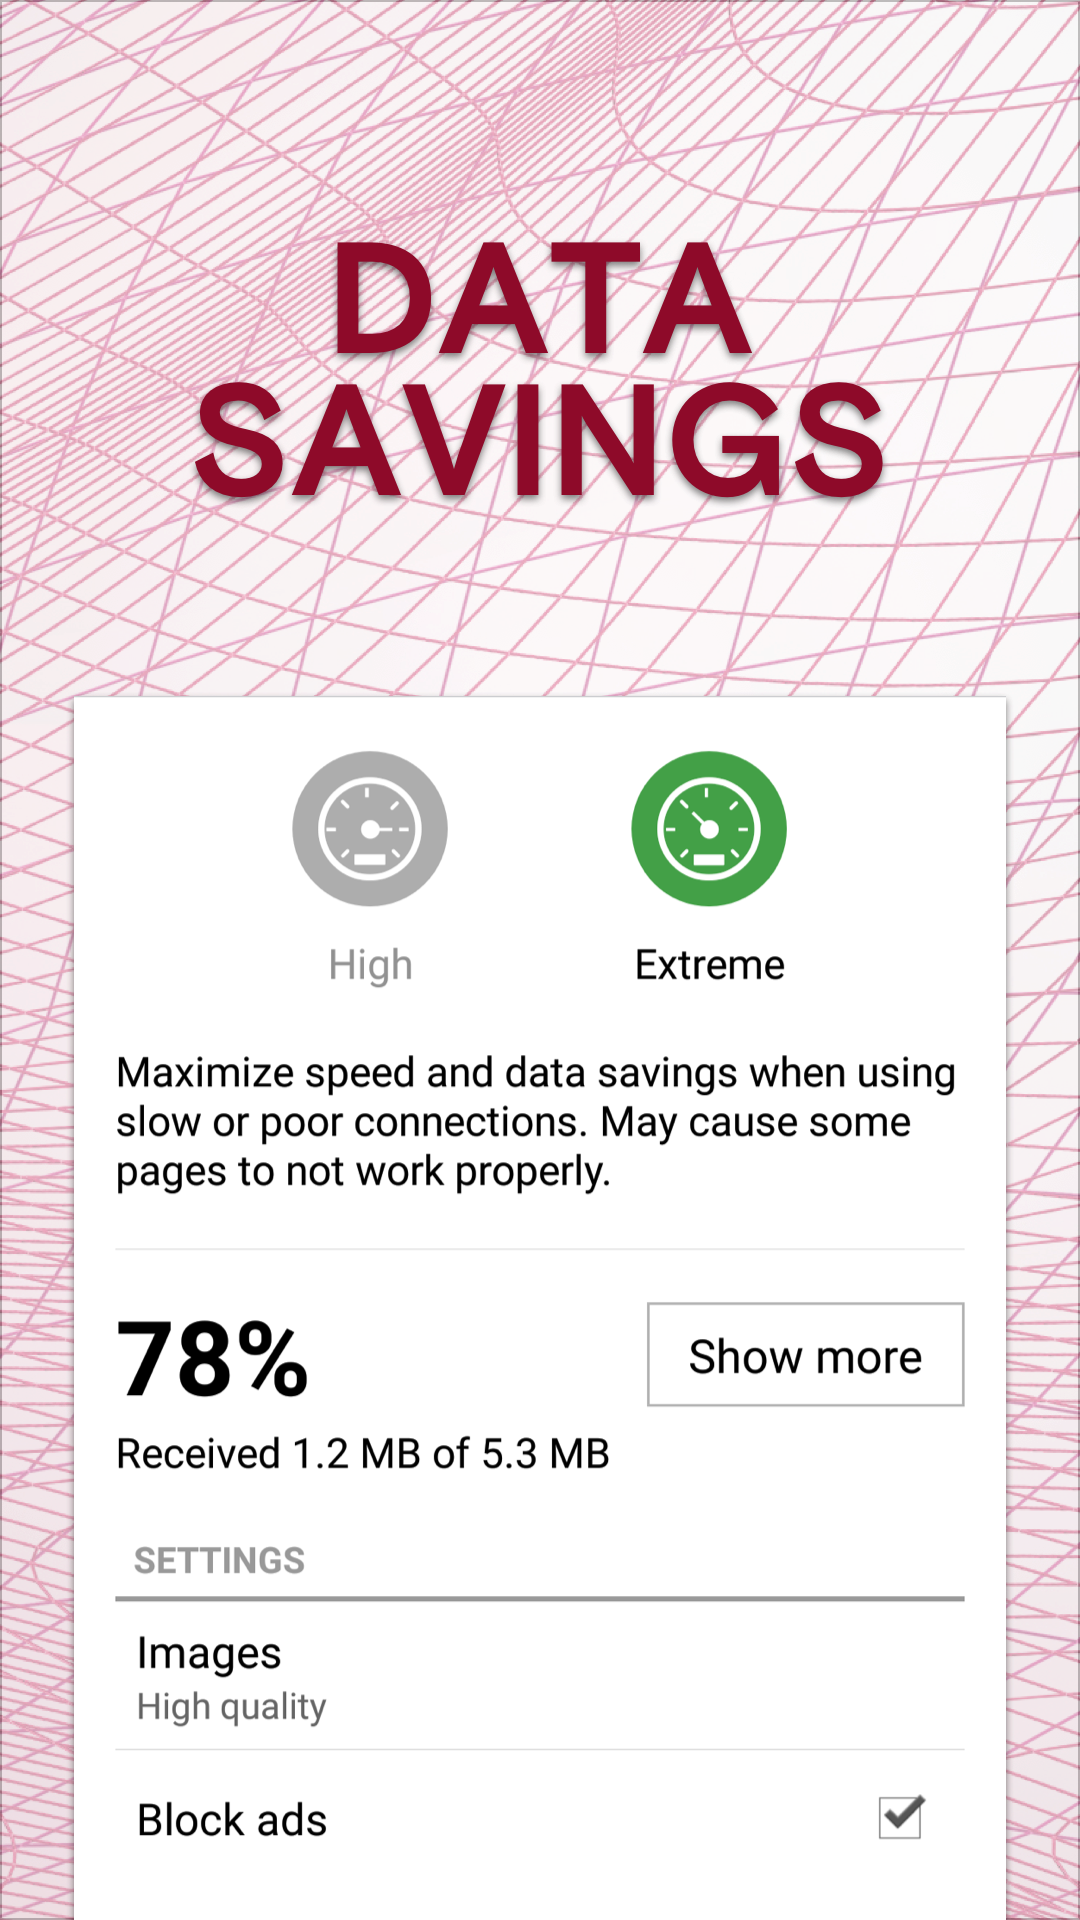 Opera Mini saves on data roaming in extreme mode